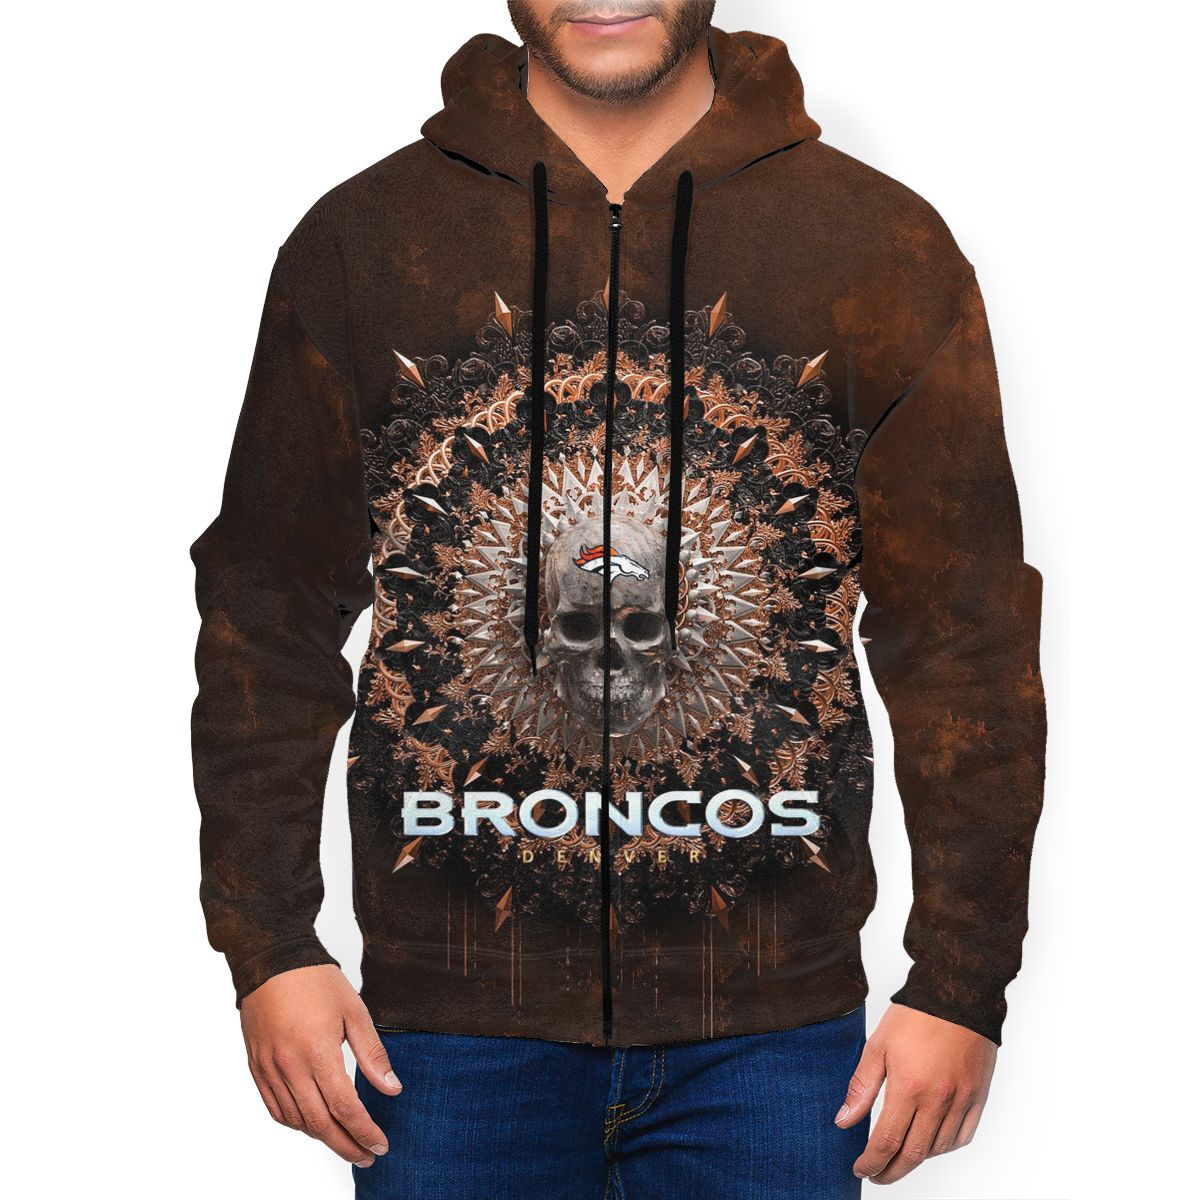 Broncos Men's Zip Hooded Sweatshirt